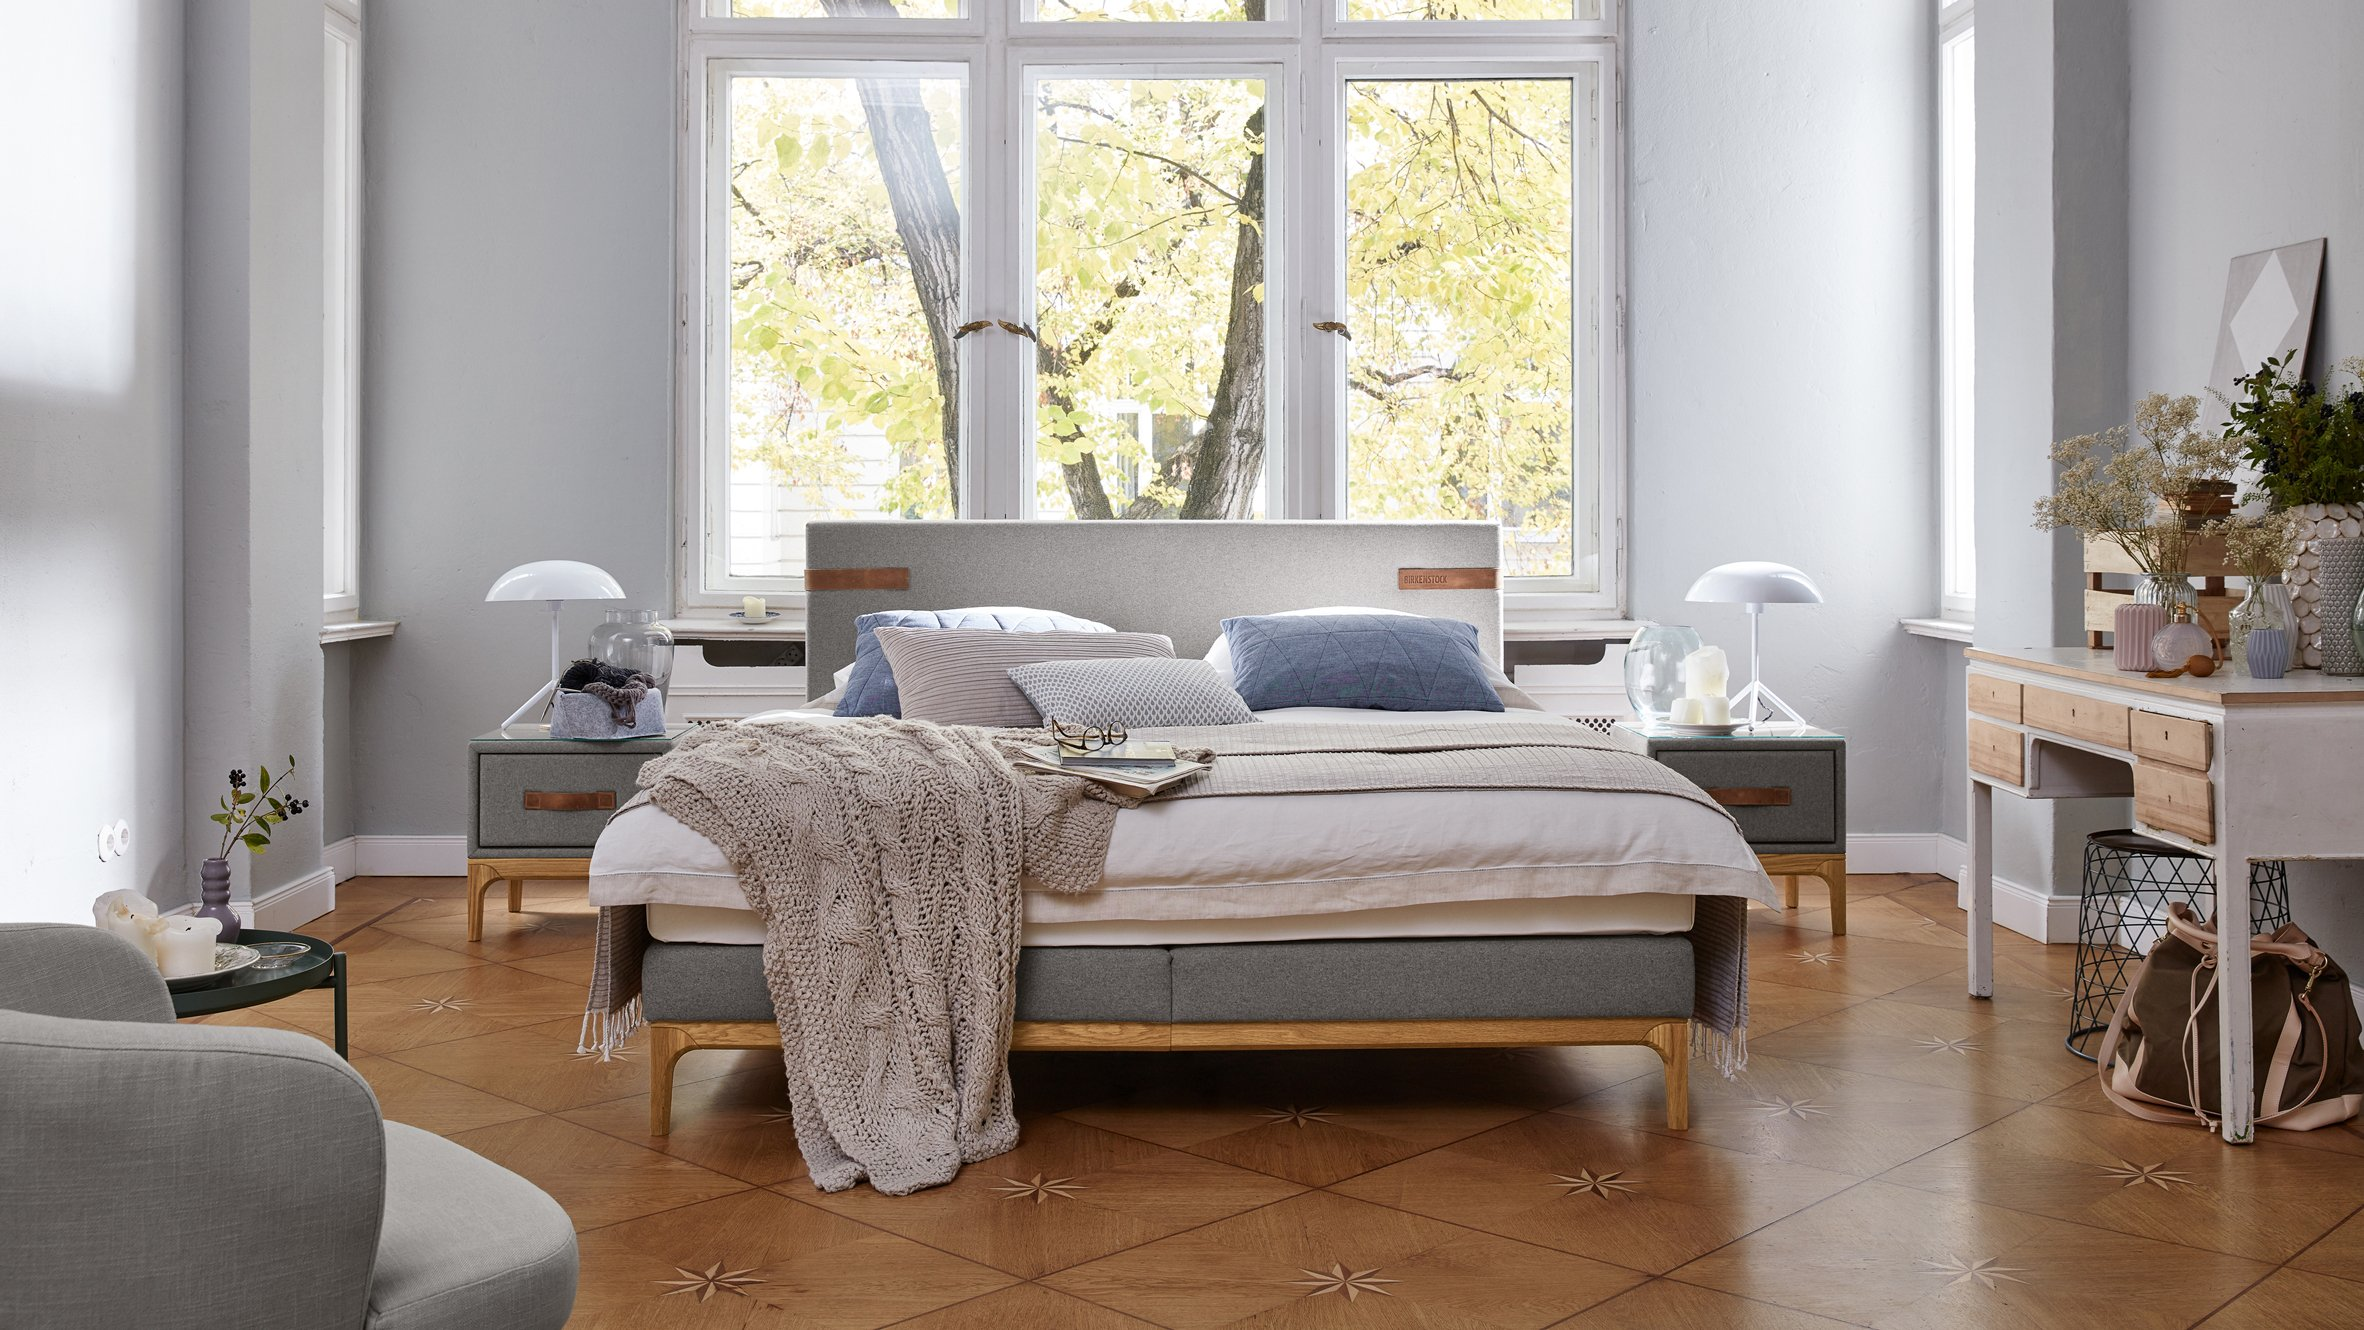 Bed design Dezeen